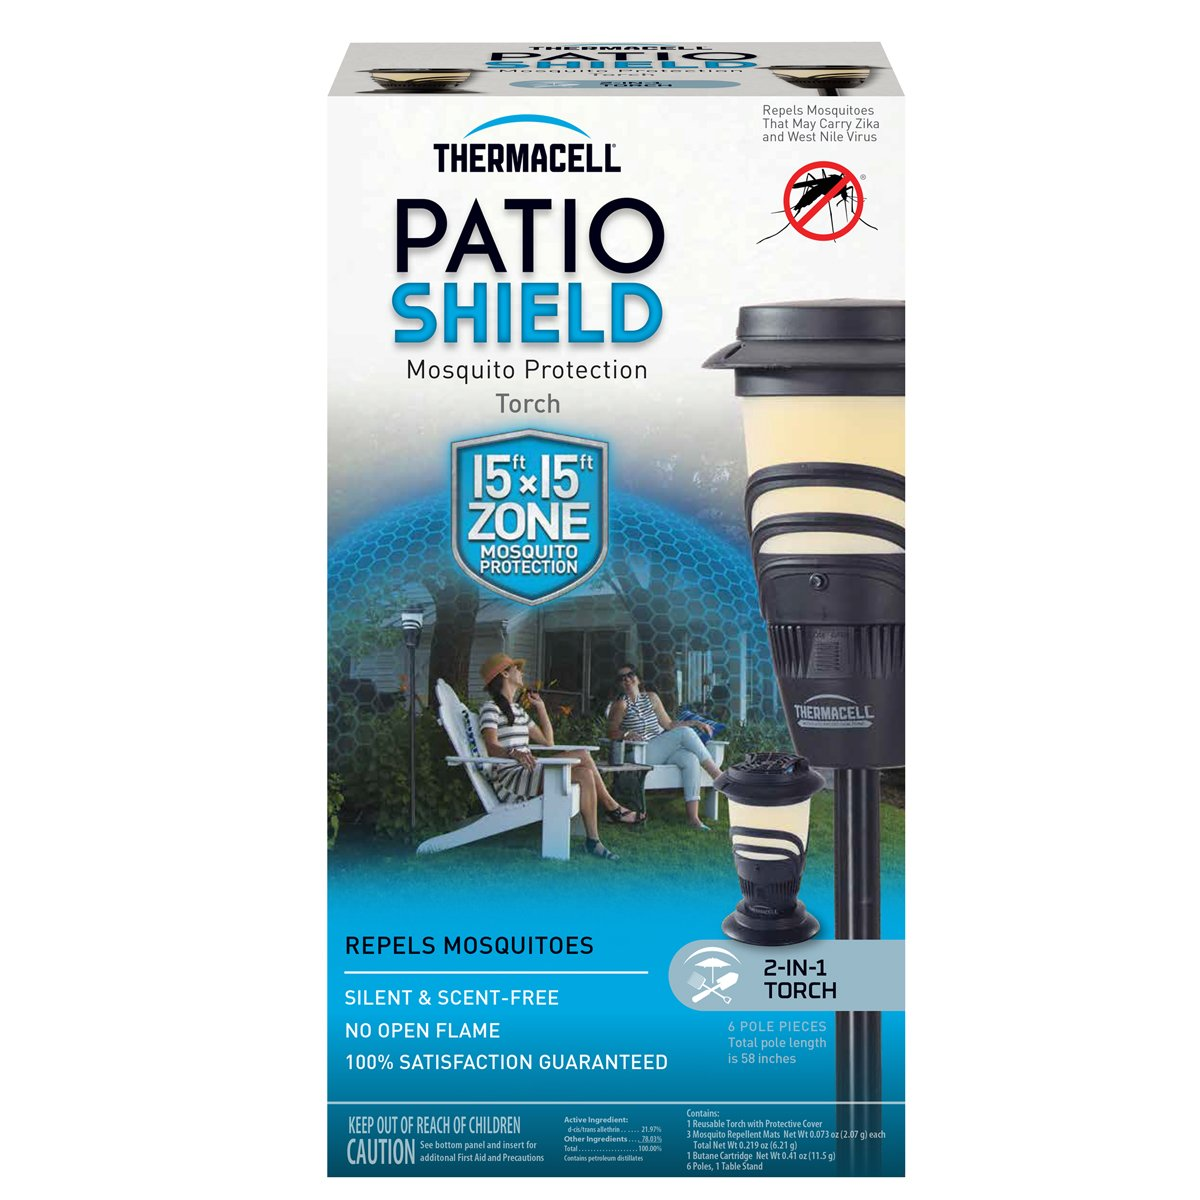 amazon com thermacell mosquito repellent patio shield torch